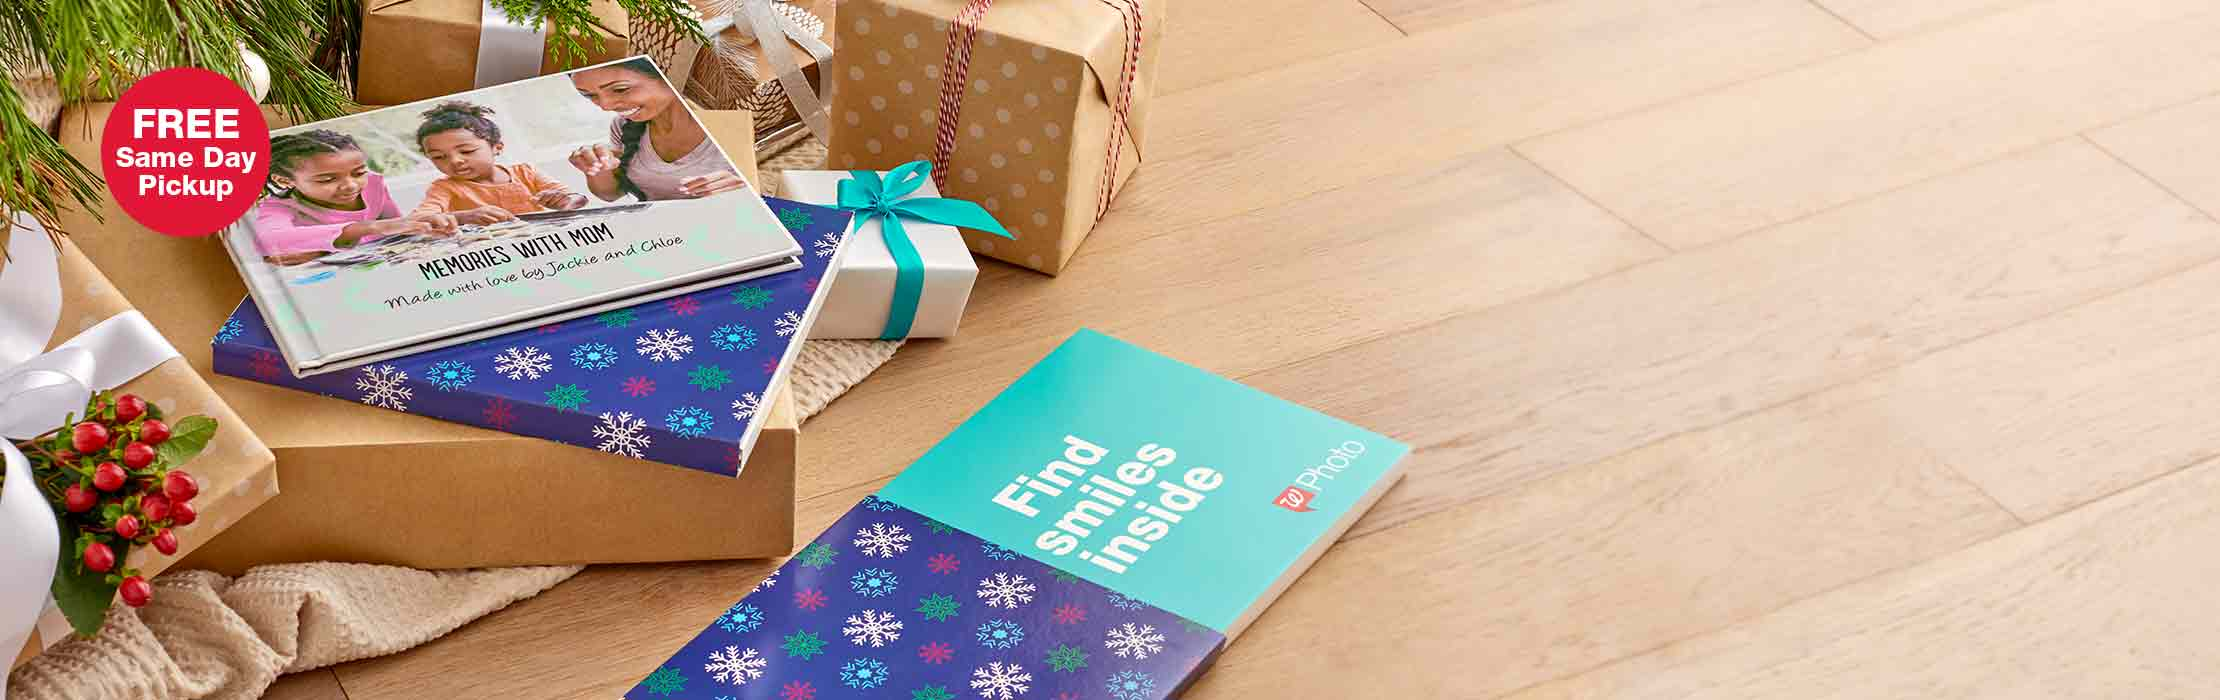 New, stylish gift packaging